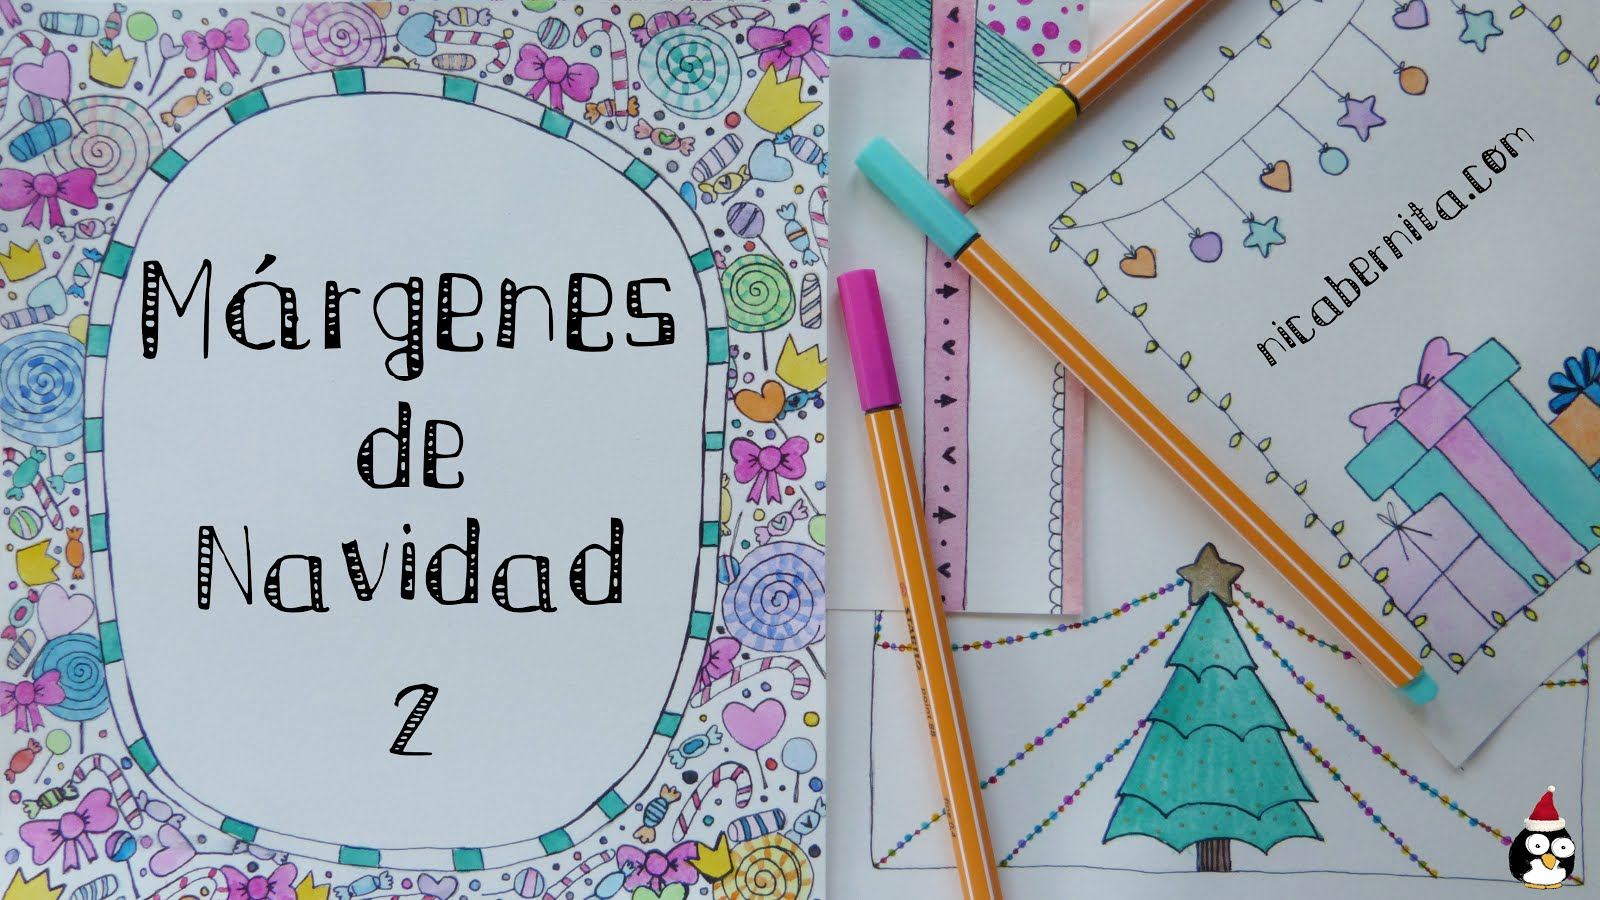 Manualidades De Papel Para Decorar Ideas De MÁrgenes Y Bordes Para Decorar Cuadernos Cartas O